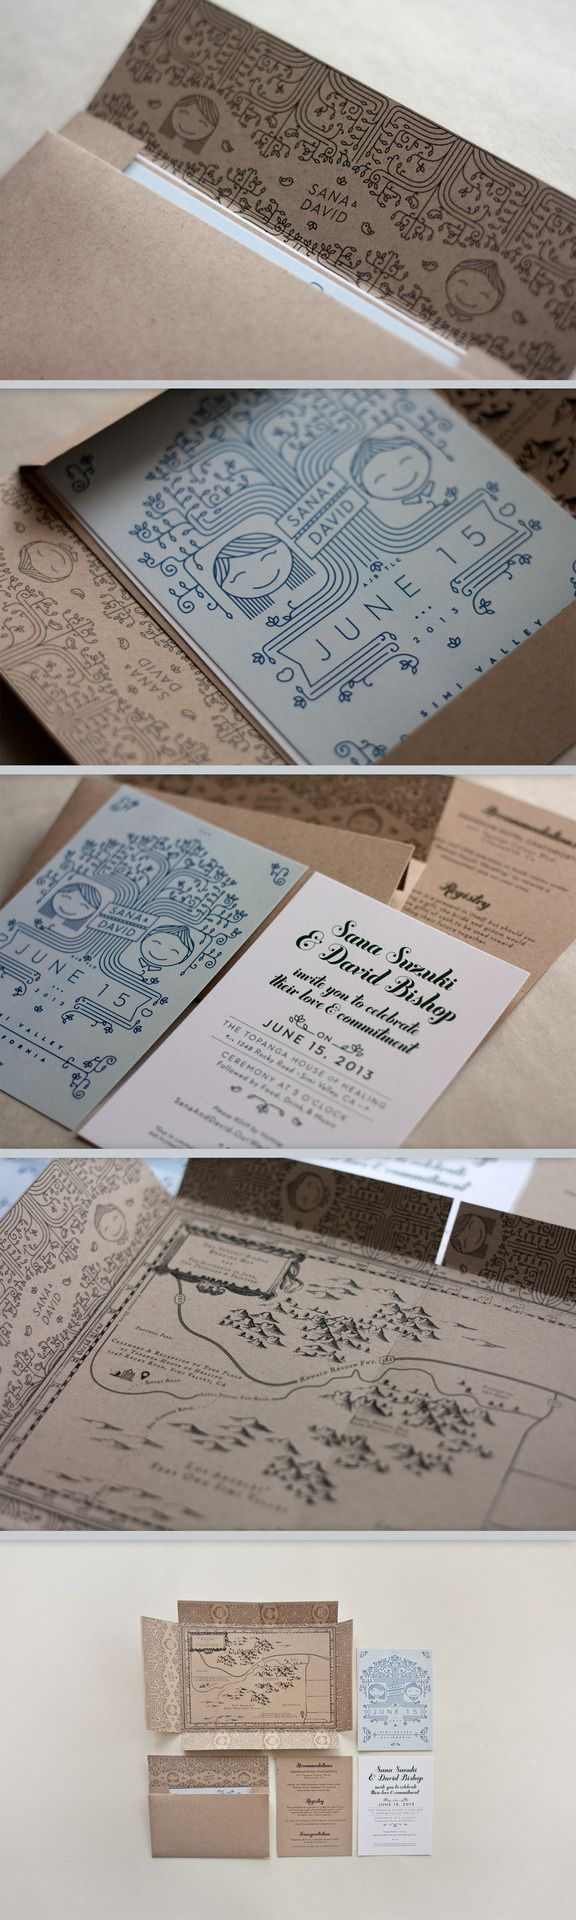 wedding invitations map%0A wedding invitation set with map that becomes the envelope